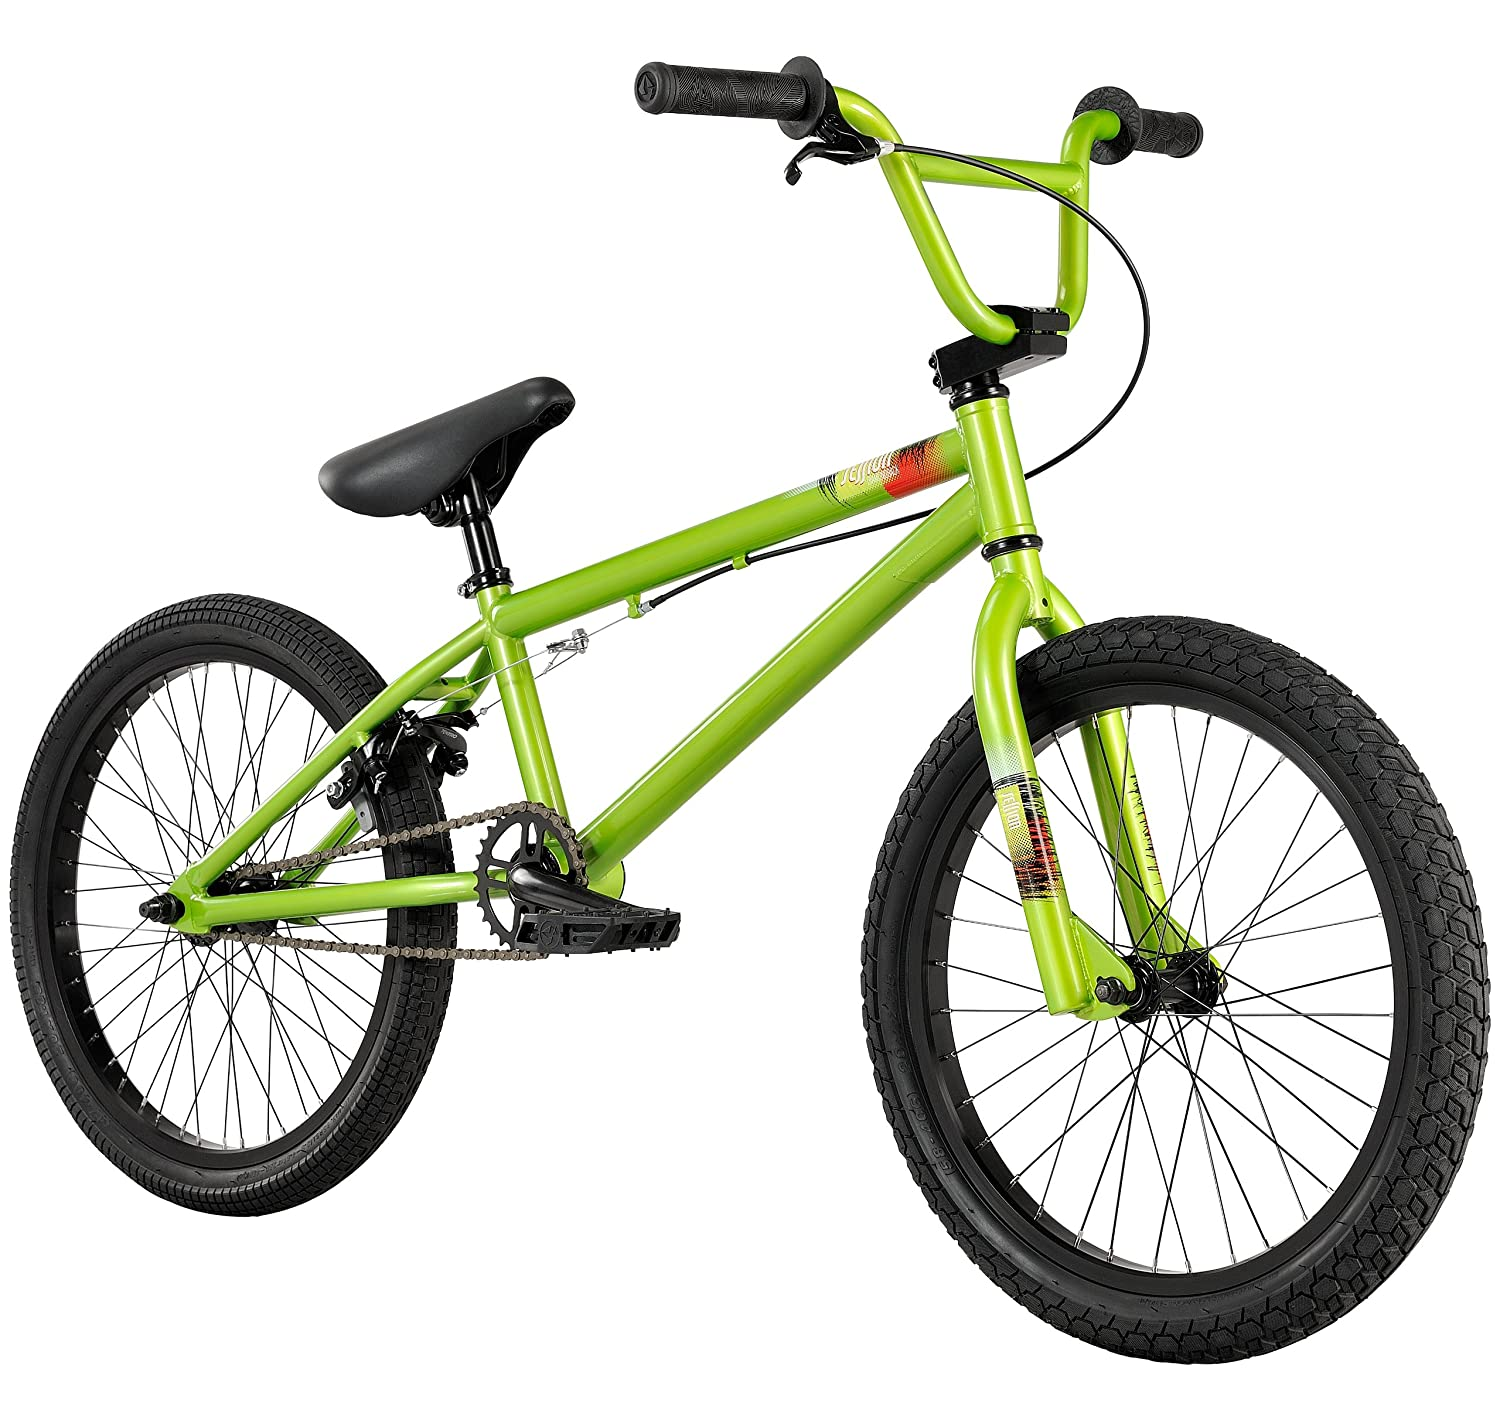 Bikes For Boys 24 Inch At Academy Diamondback Bicycles